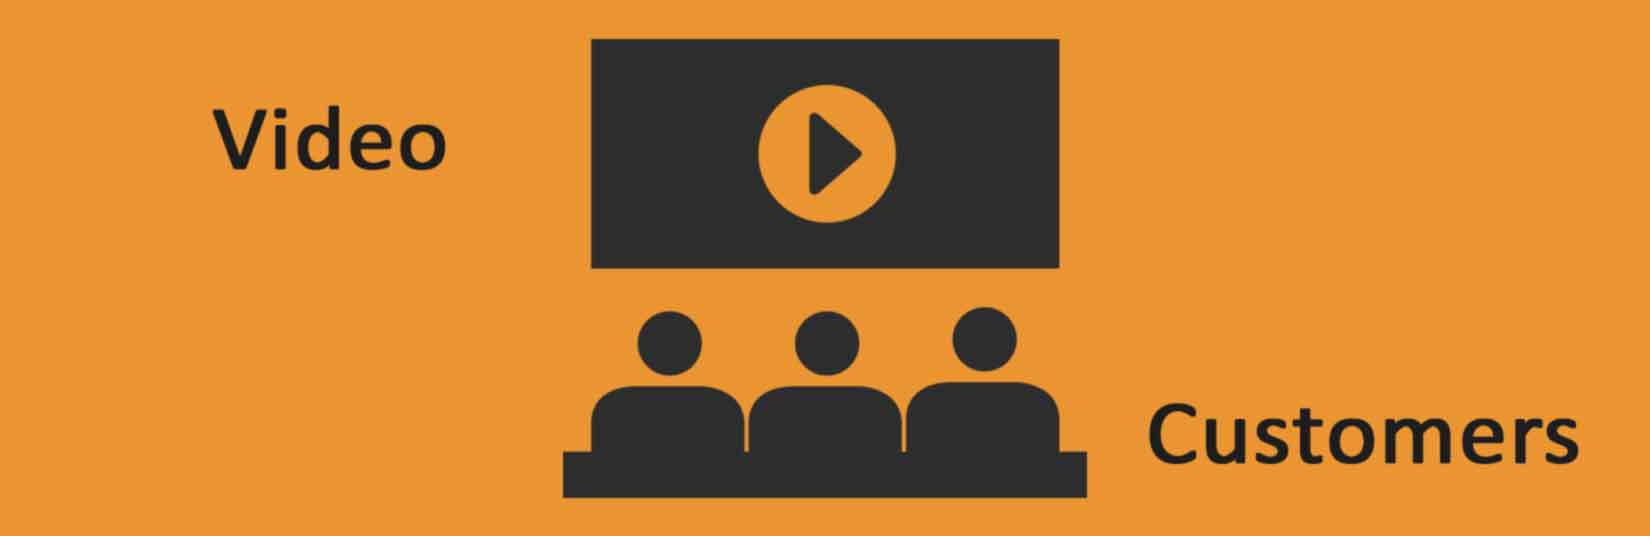 Videos engage customers, Videos will engage more customers